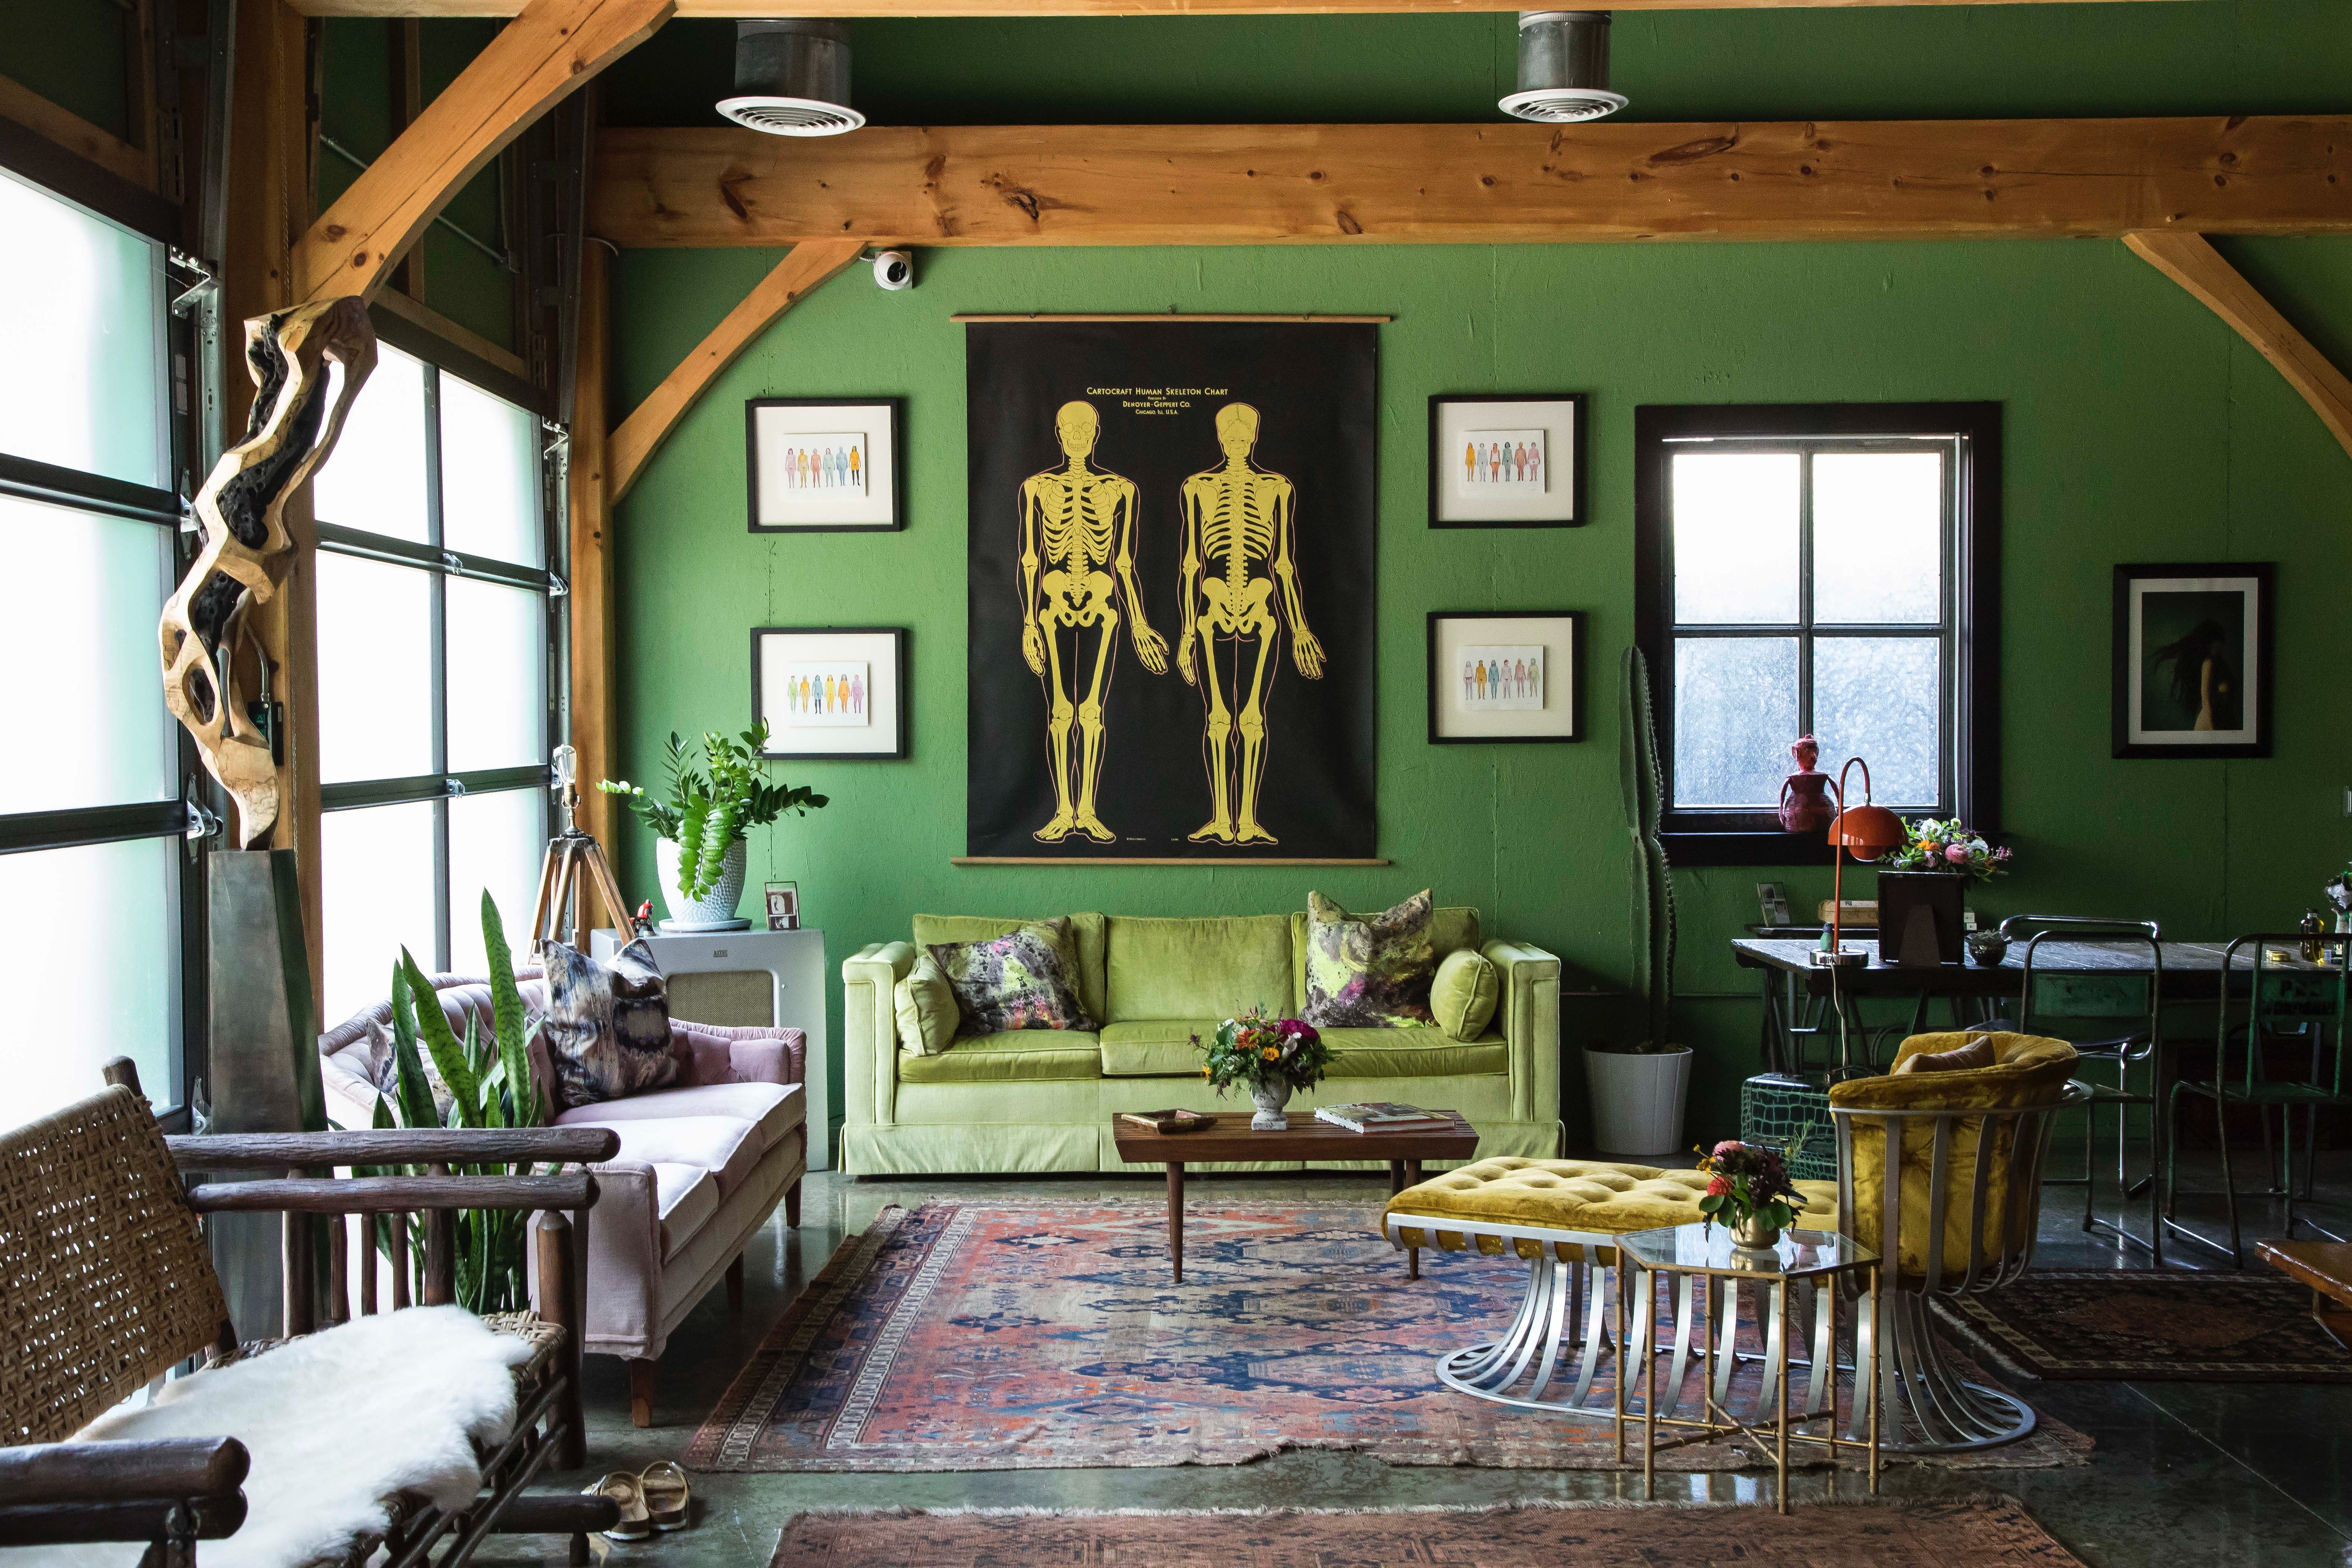 5 Rustic Home Decor Ideas Straight From A Vintage Obsessed